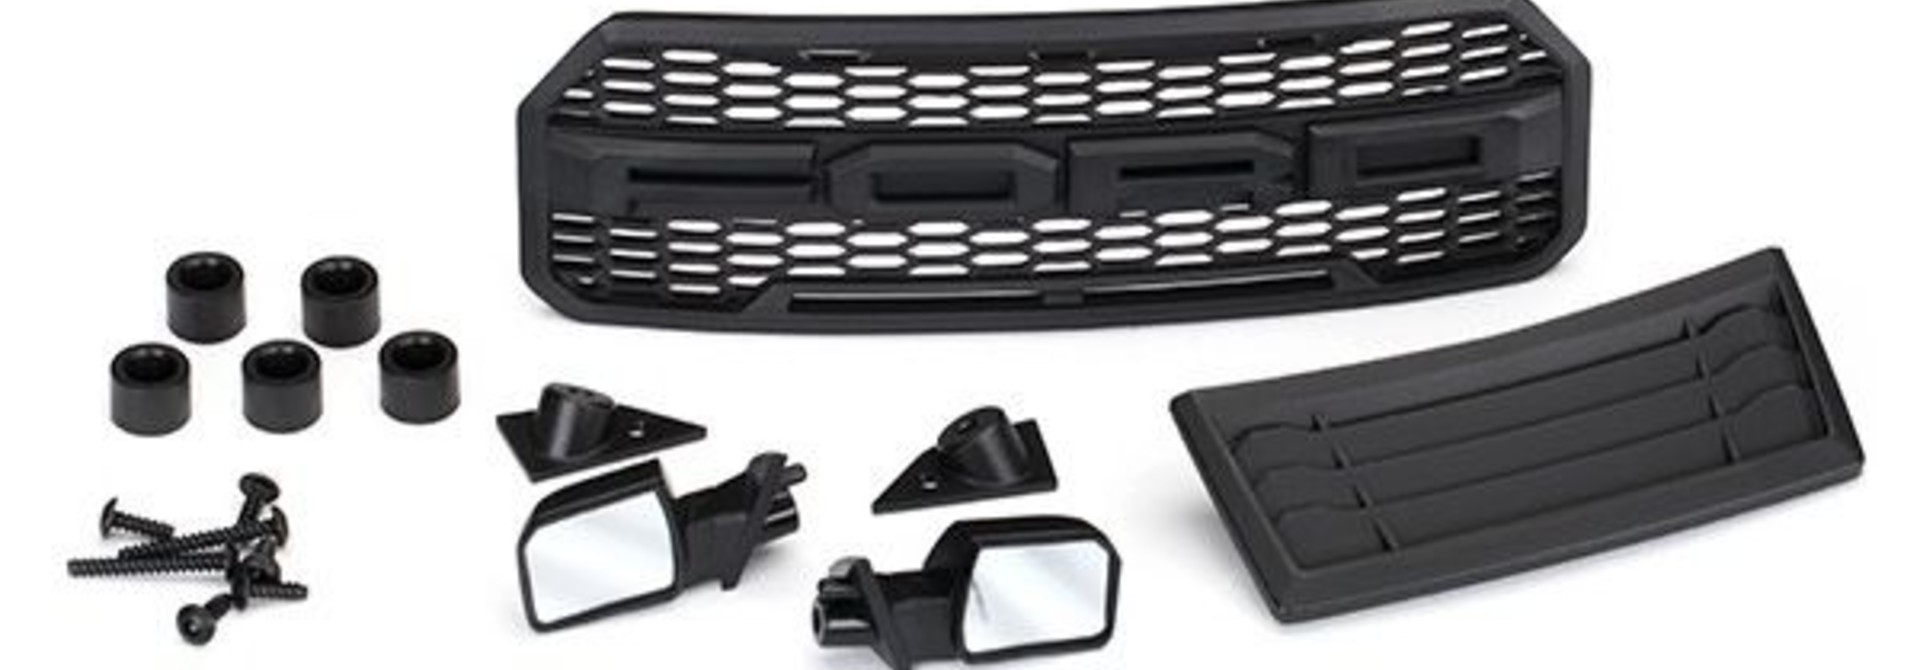 Body accessories kit, 2017 Ford Raptor (includes grill, hood, TRX5828